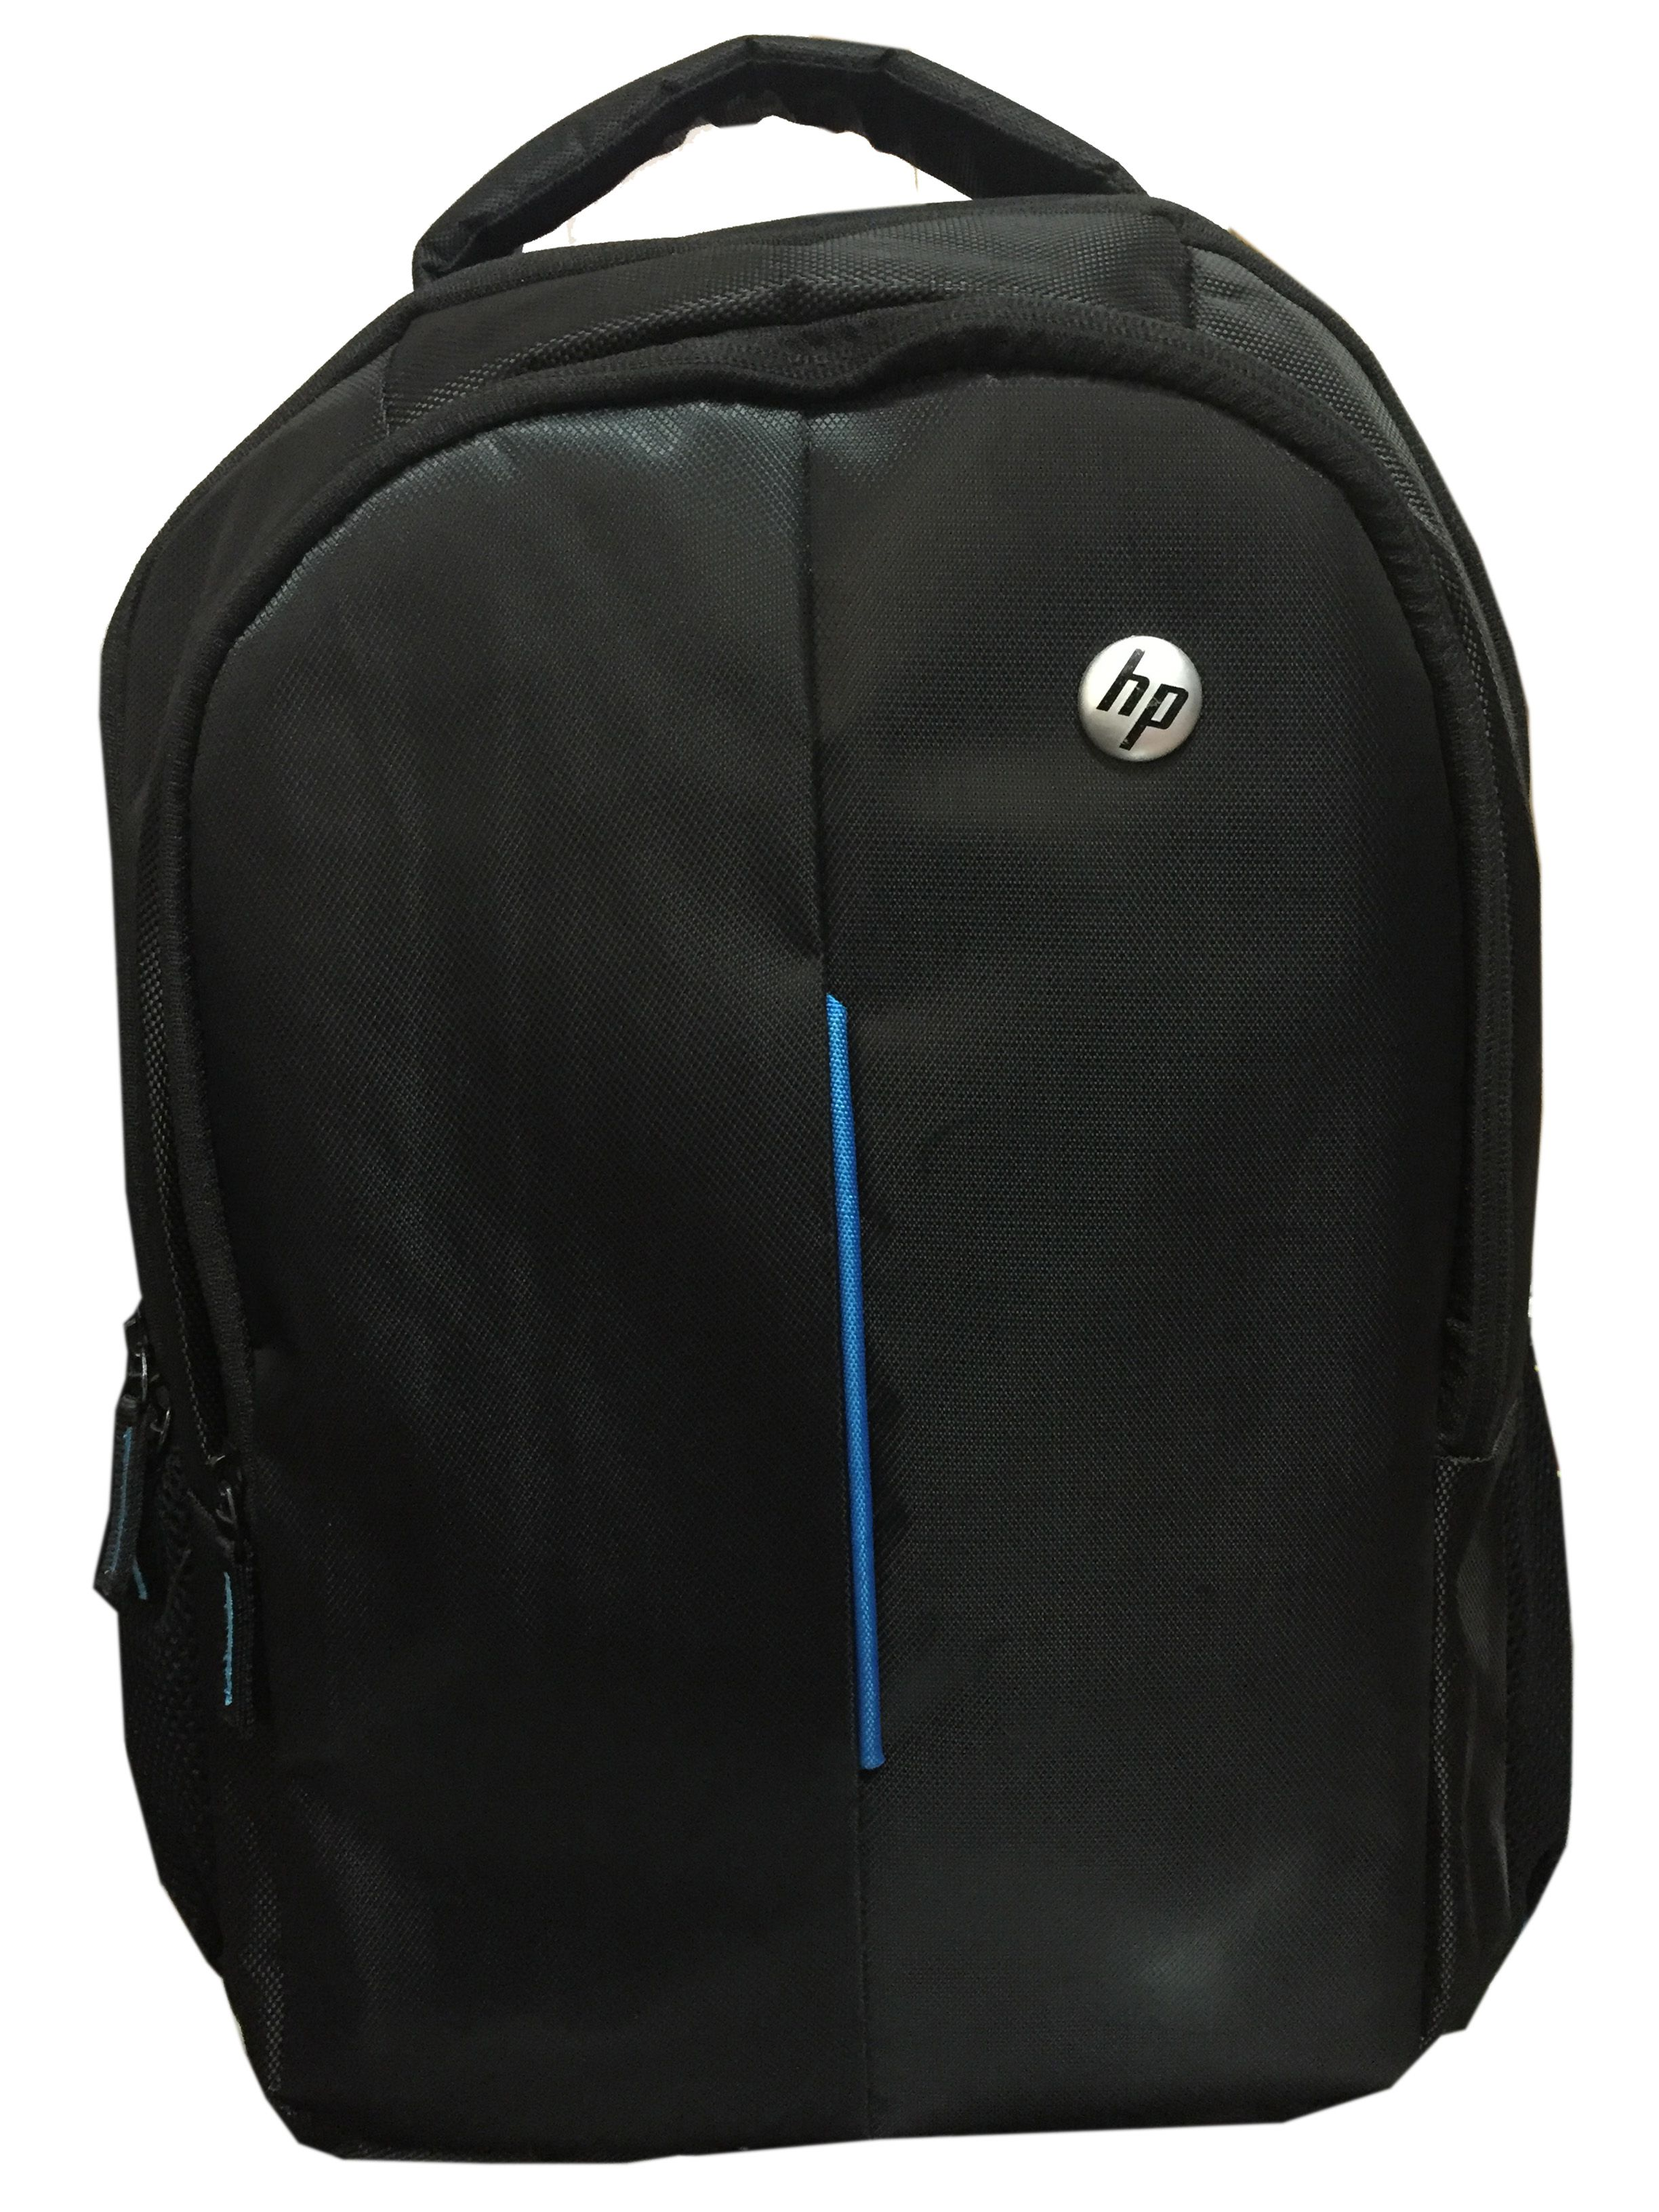 72a6763f60 HP Black Laptop Bags - Buy HP Black Laptop Bags Online at Low Price -  Snapdeal